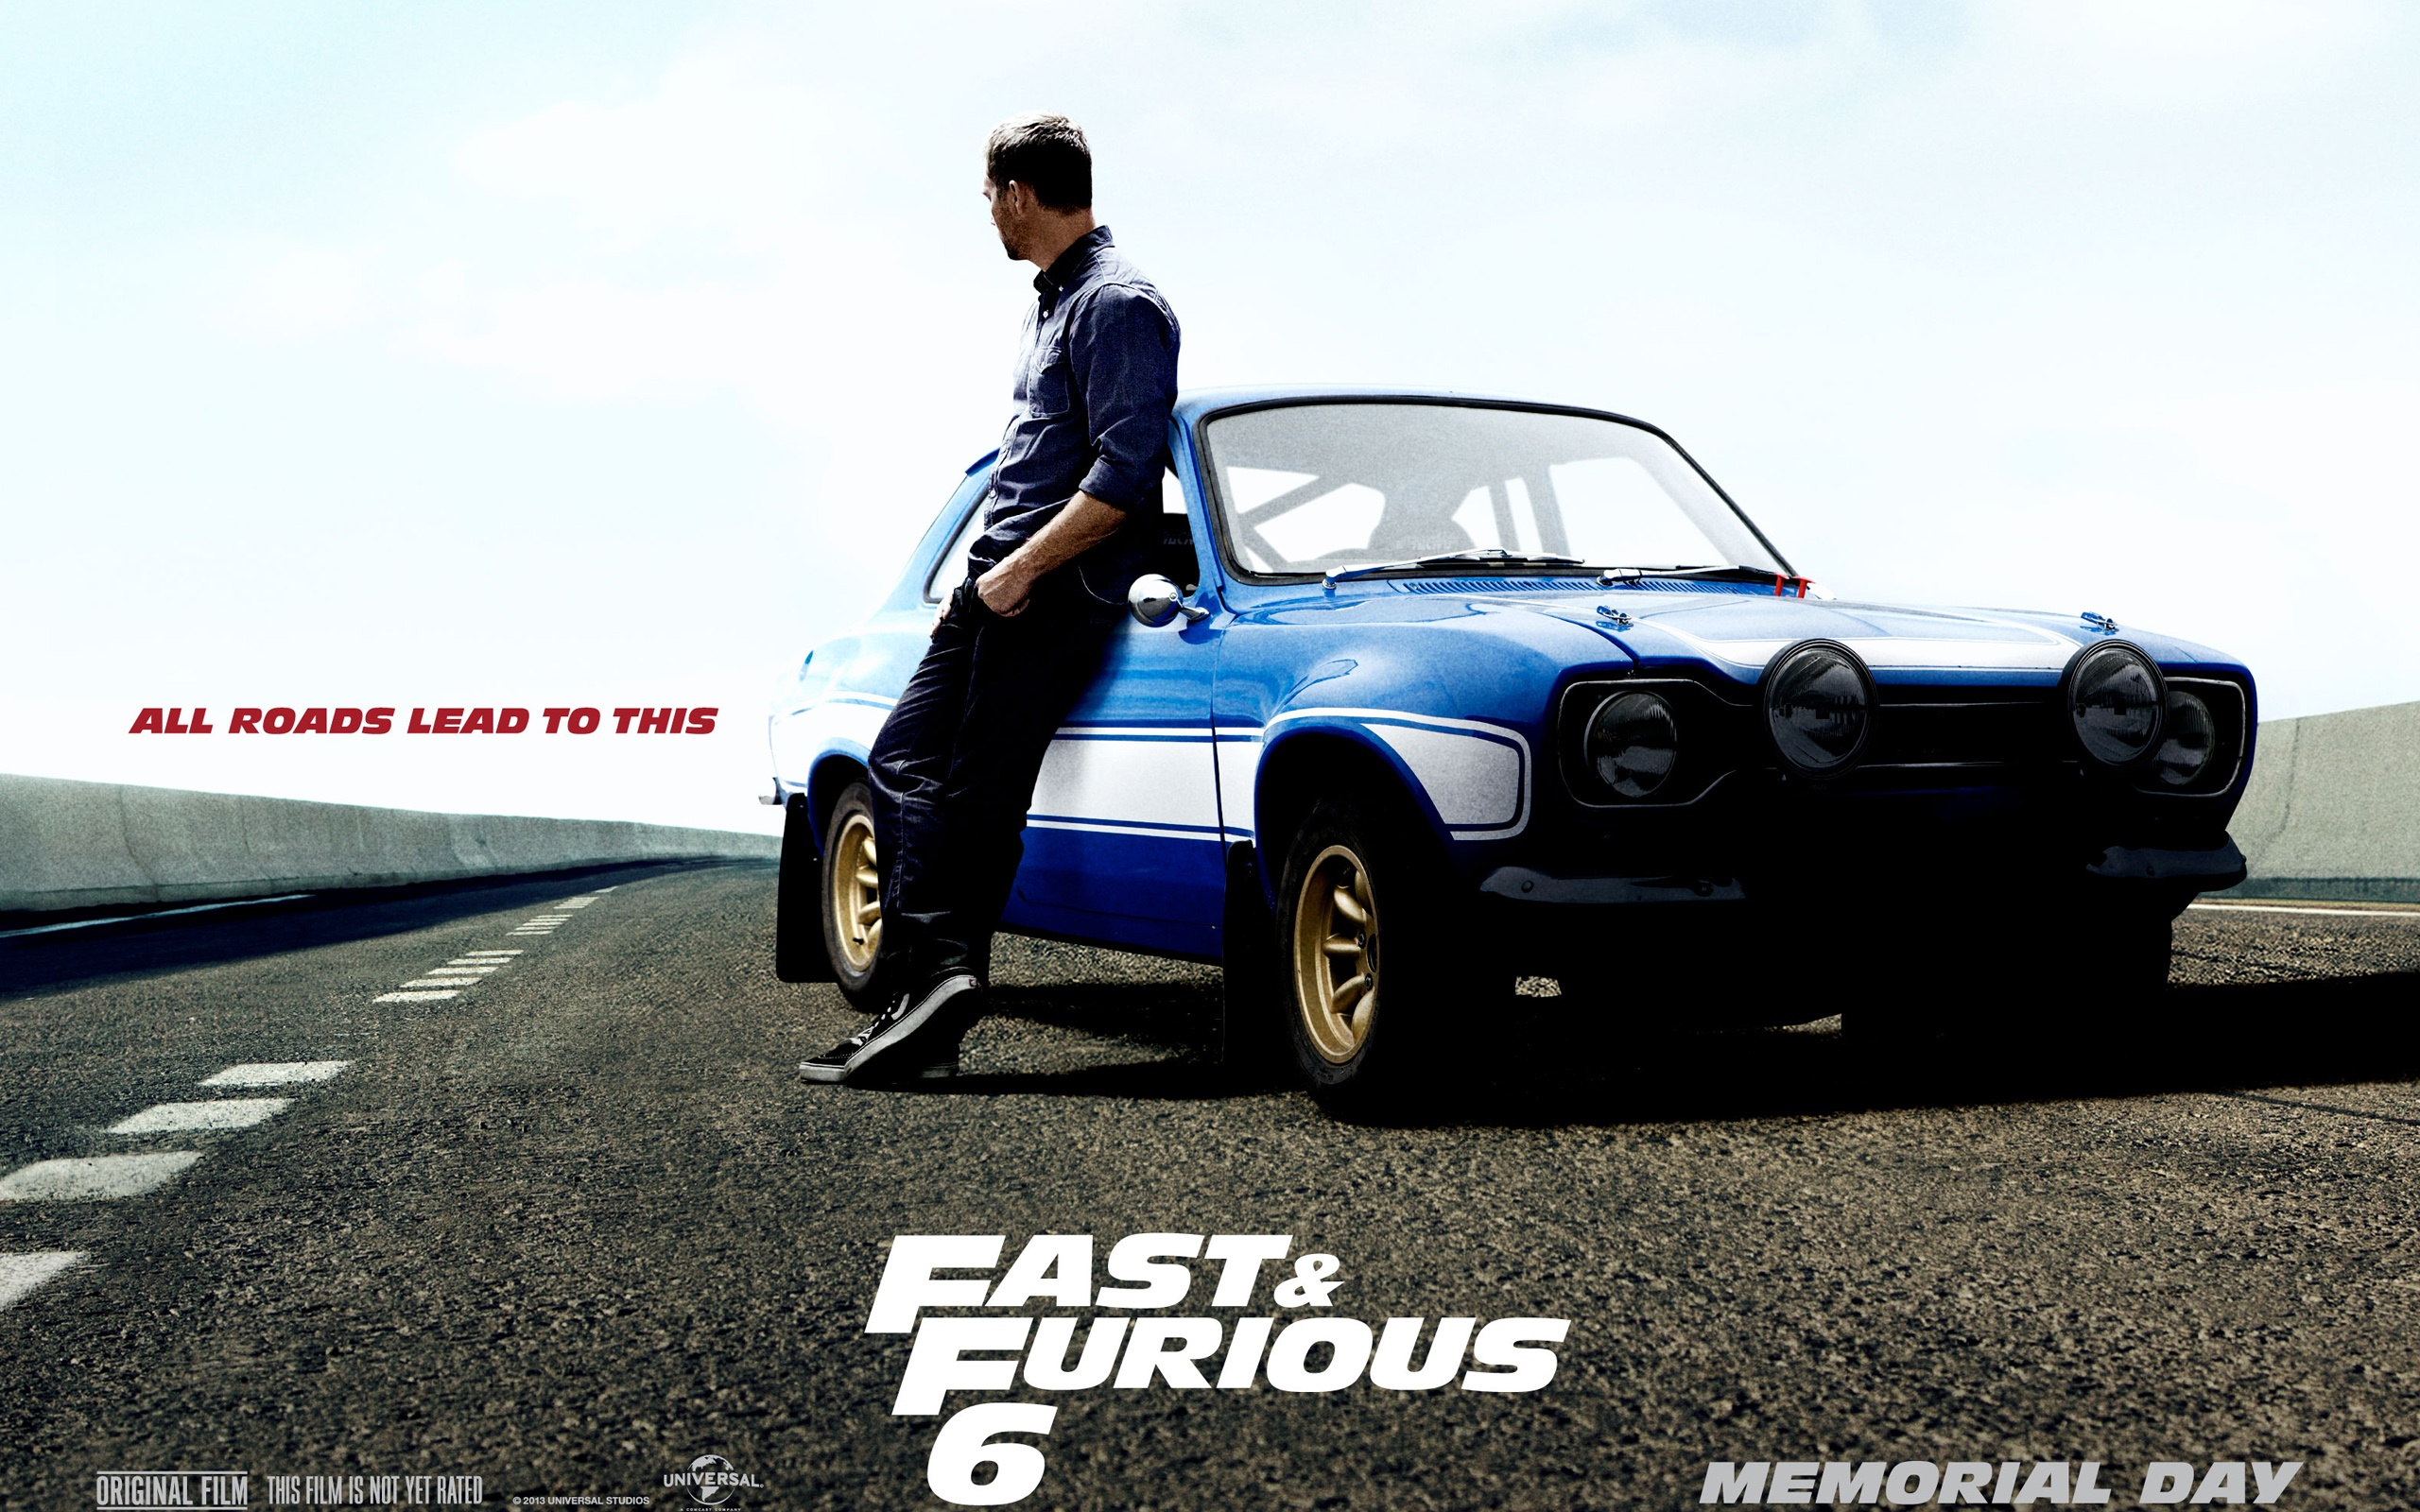 Paul Walker In Fast And Furious 6 750x1334 Iphone 8 7 6 6s